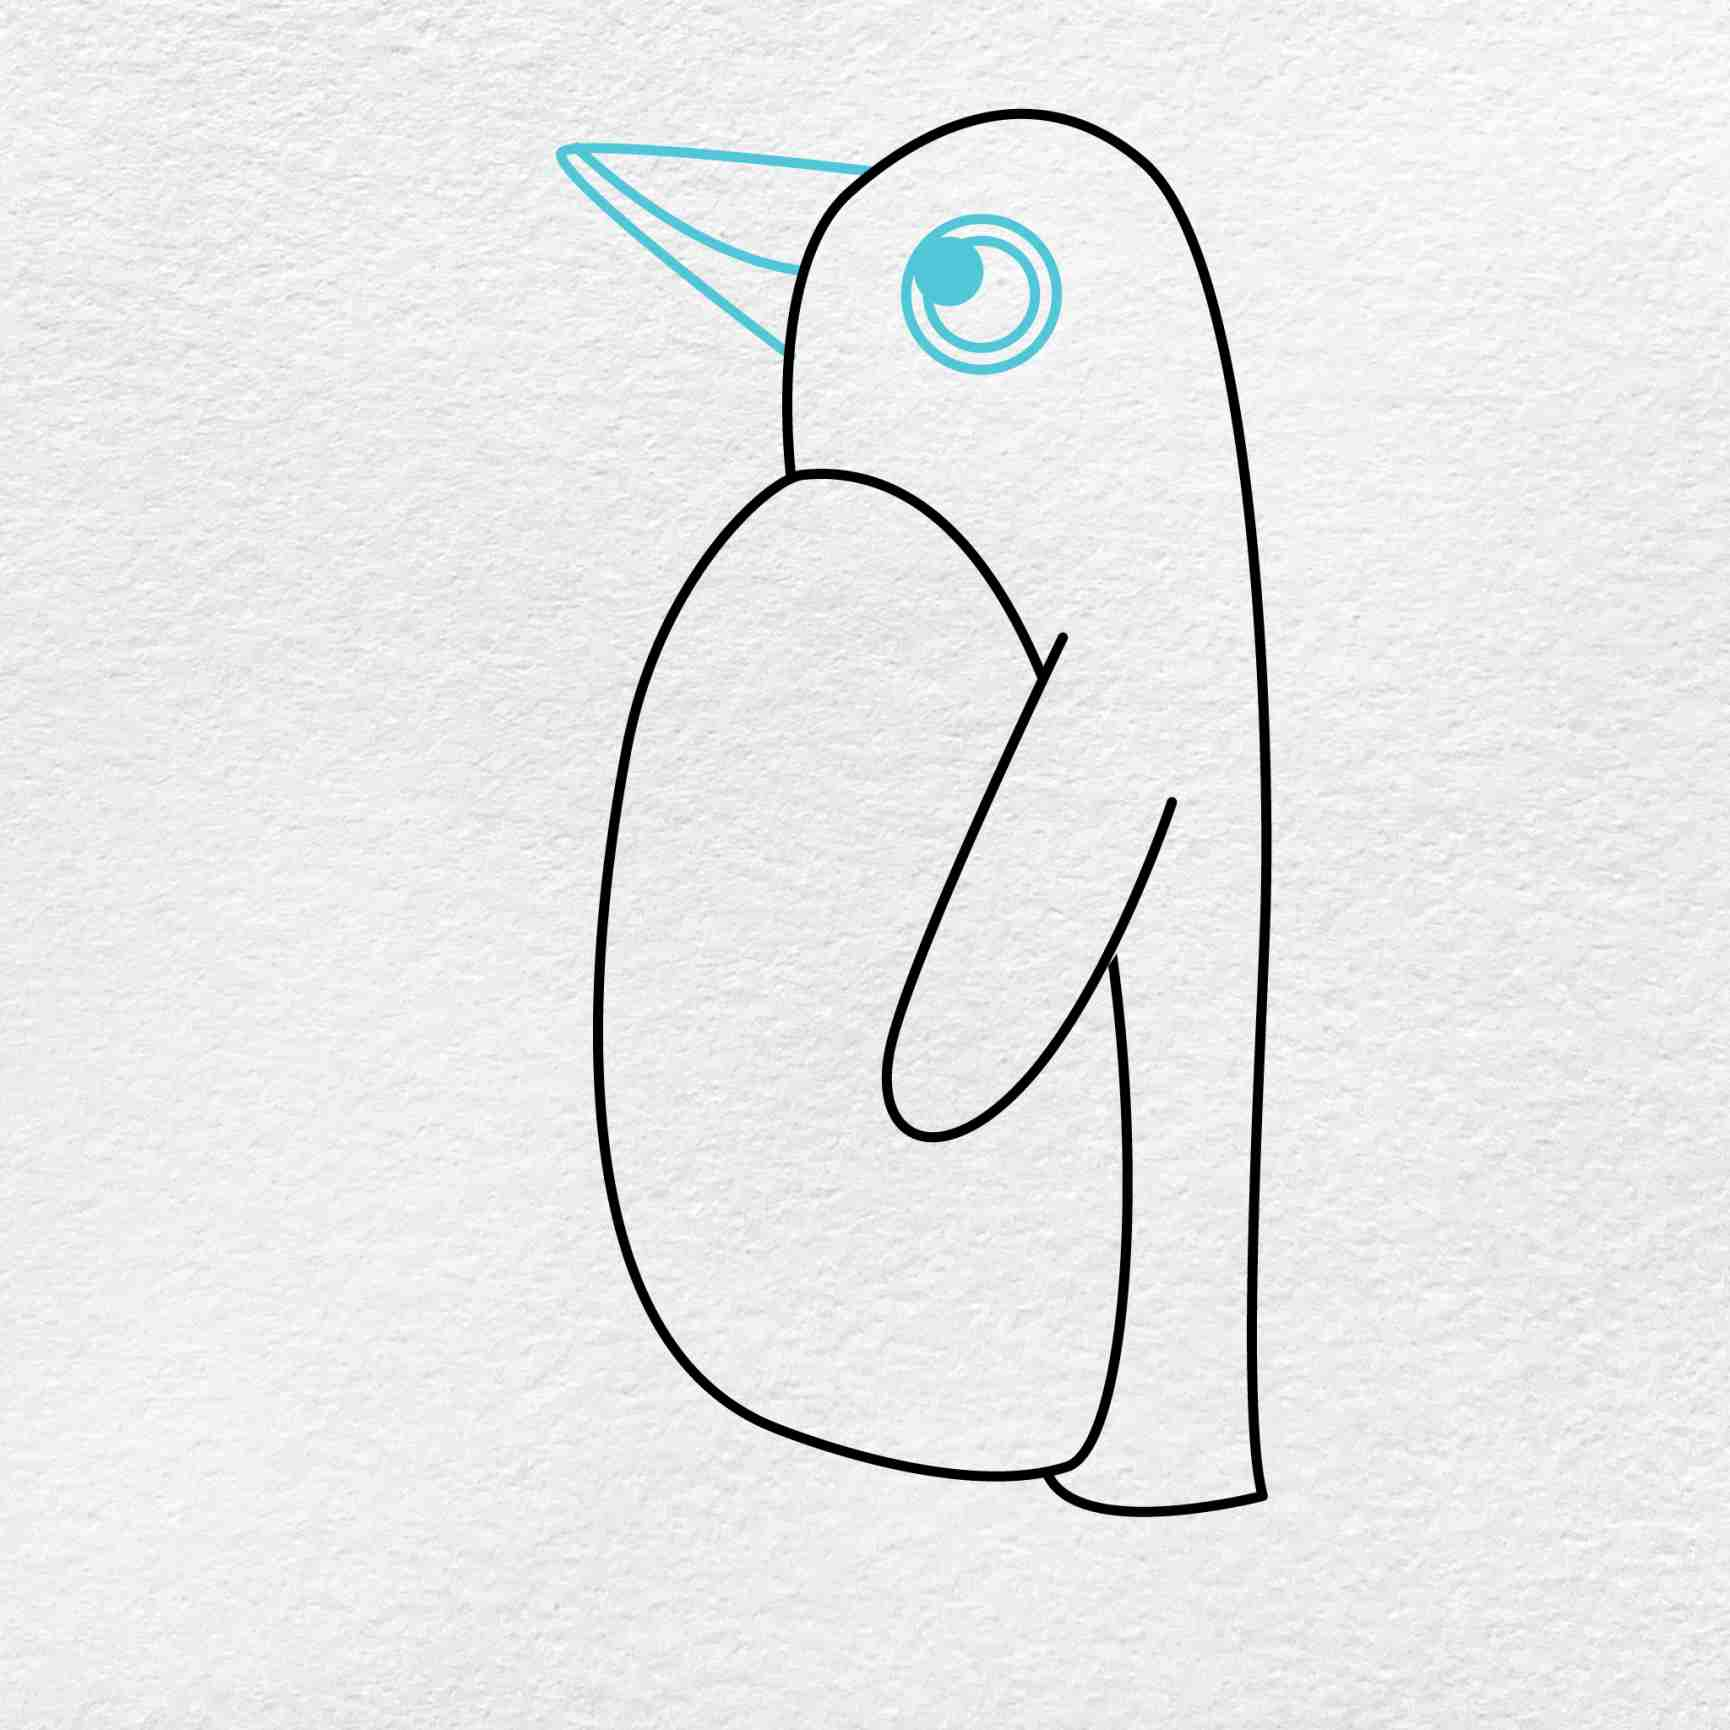 How To Draw A Penguin: Step 4